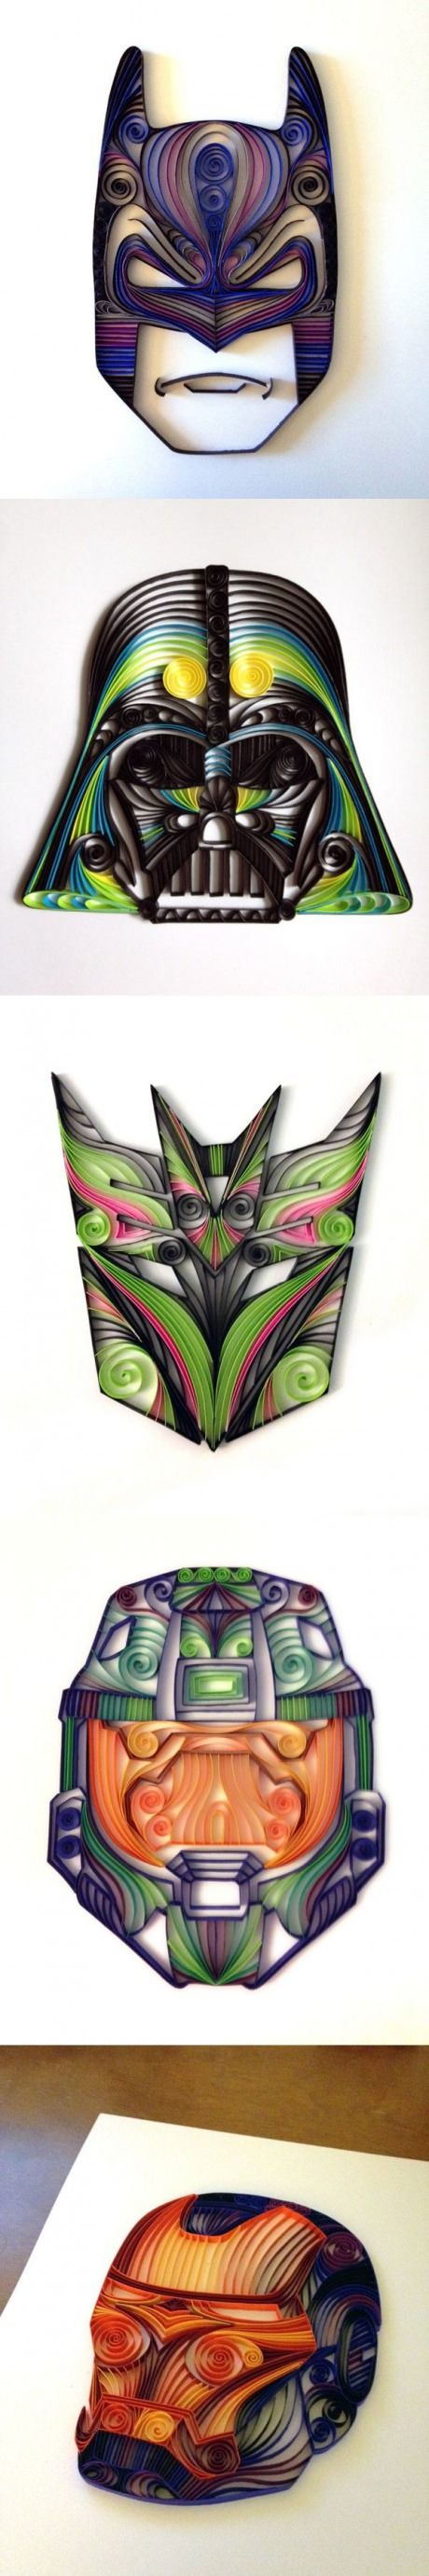 Geeky Paper Quilling, Batman, Vader, Decepticon, Iron Man